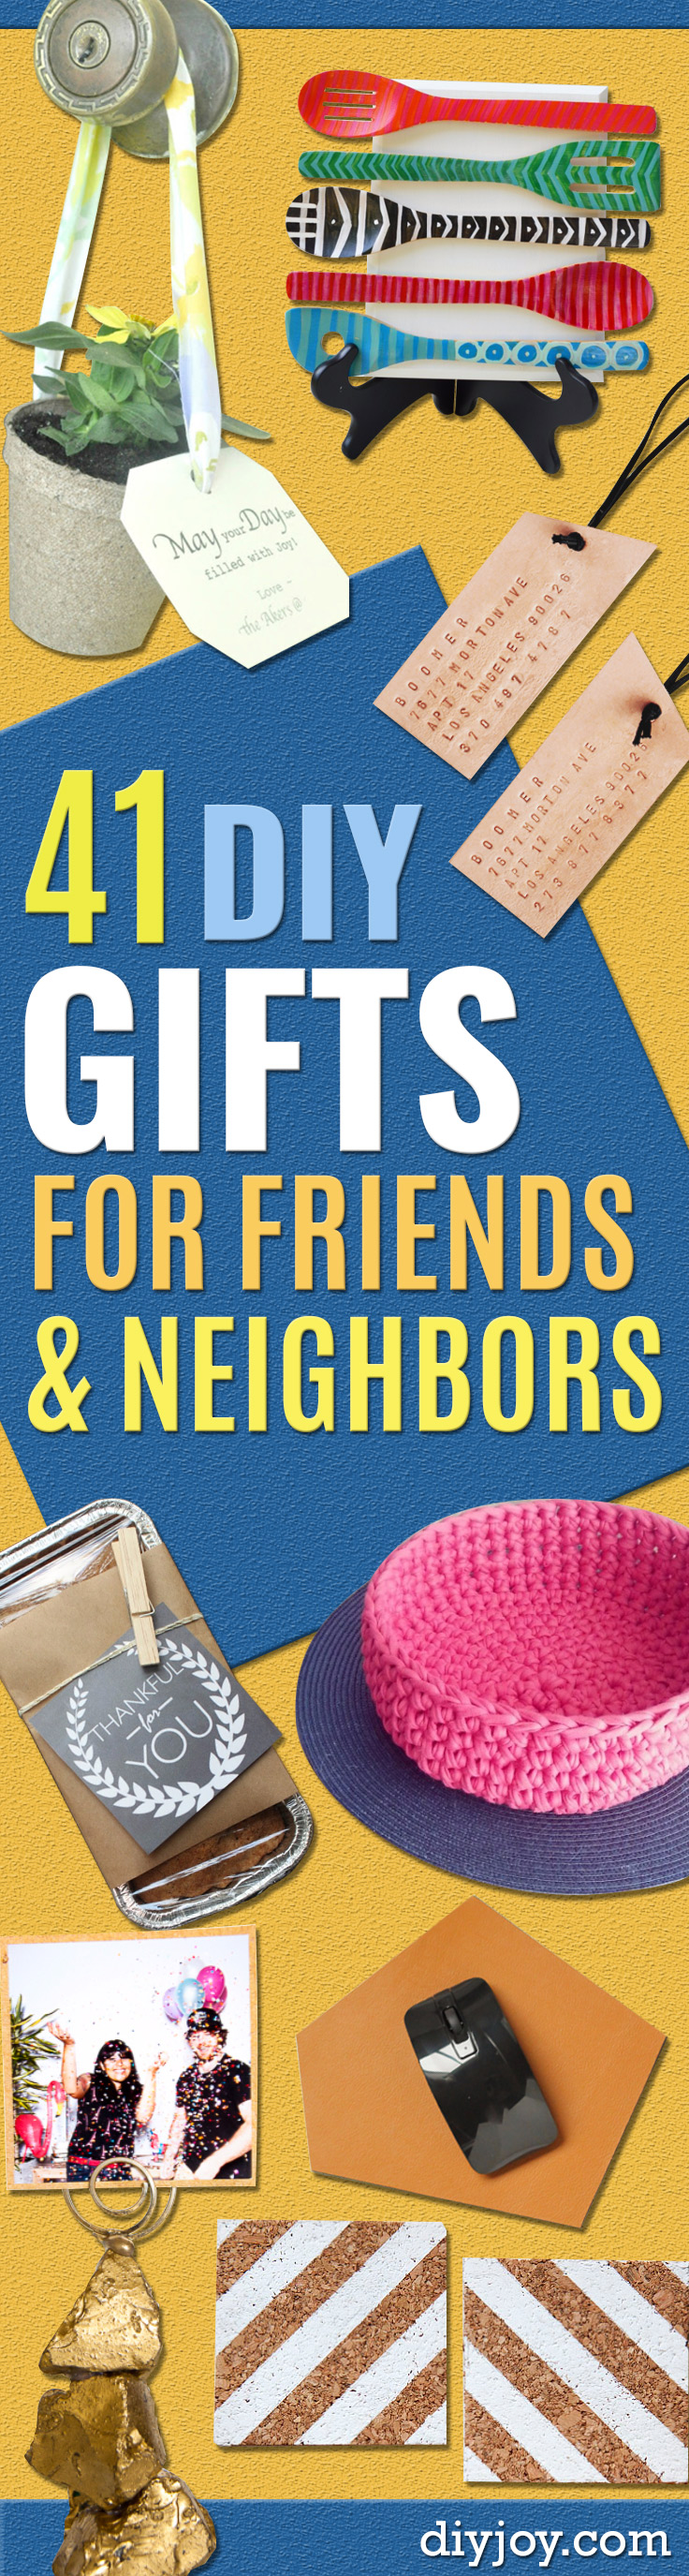 Best DIY Gifts for Neighbors - Cute Mason Jar Crafts, Gift Baskets and Cheap and Easy Gift Ideas to Make for Friends - Do It Yourself Projects You Can Sew and Craft That Make Awesome DIY Gifts and Homemade Christmas Presents http://diyjoy.com/diy-gifts-friends-neighbors